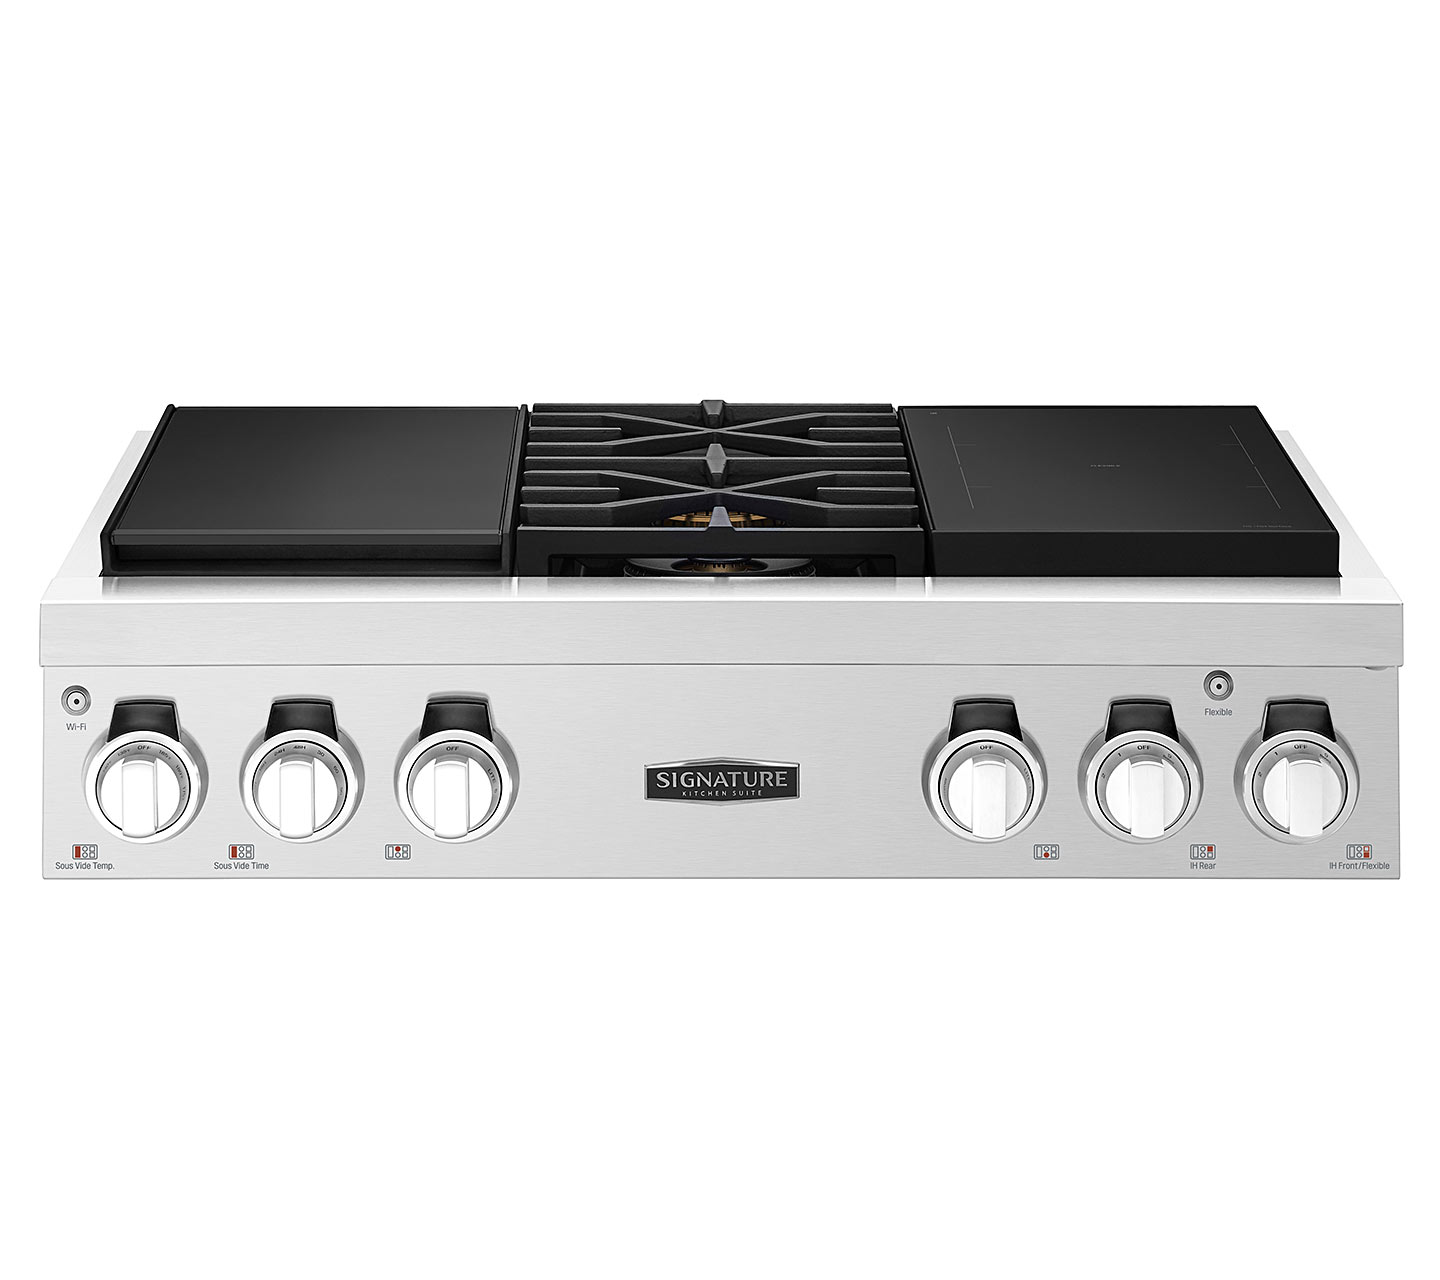 SKSRT360SIS – 36-inch Pro Rangetop with Sous Vide and Induction